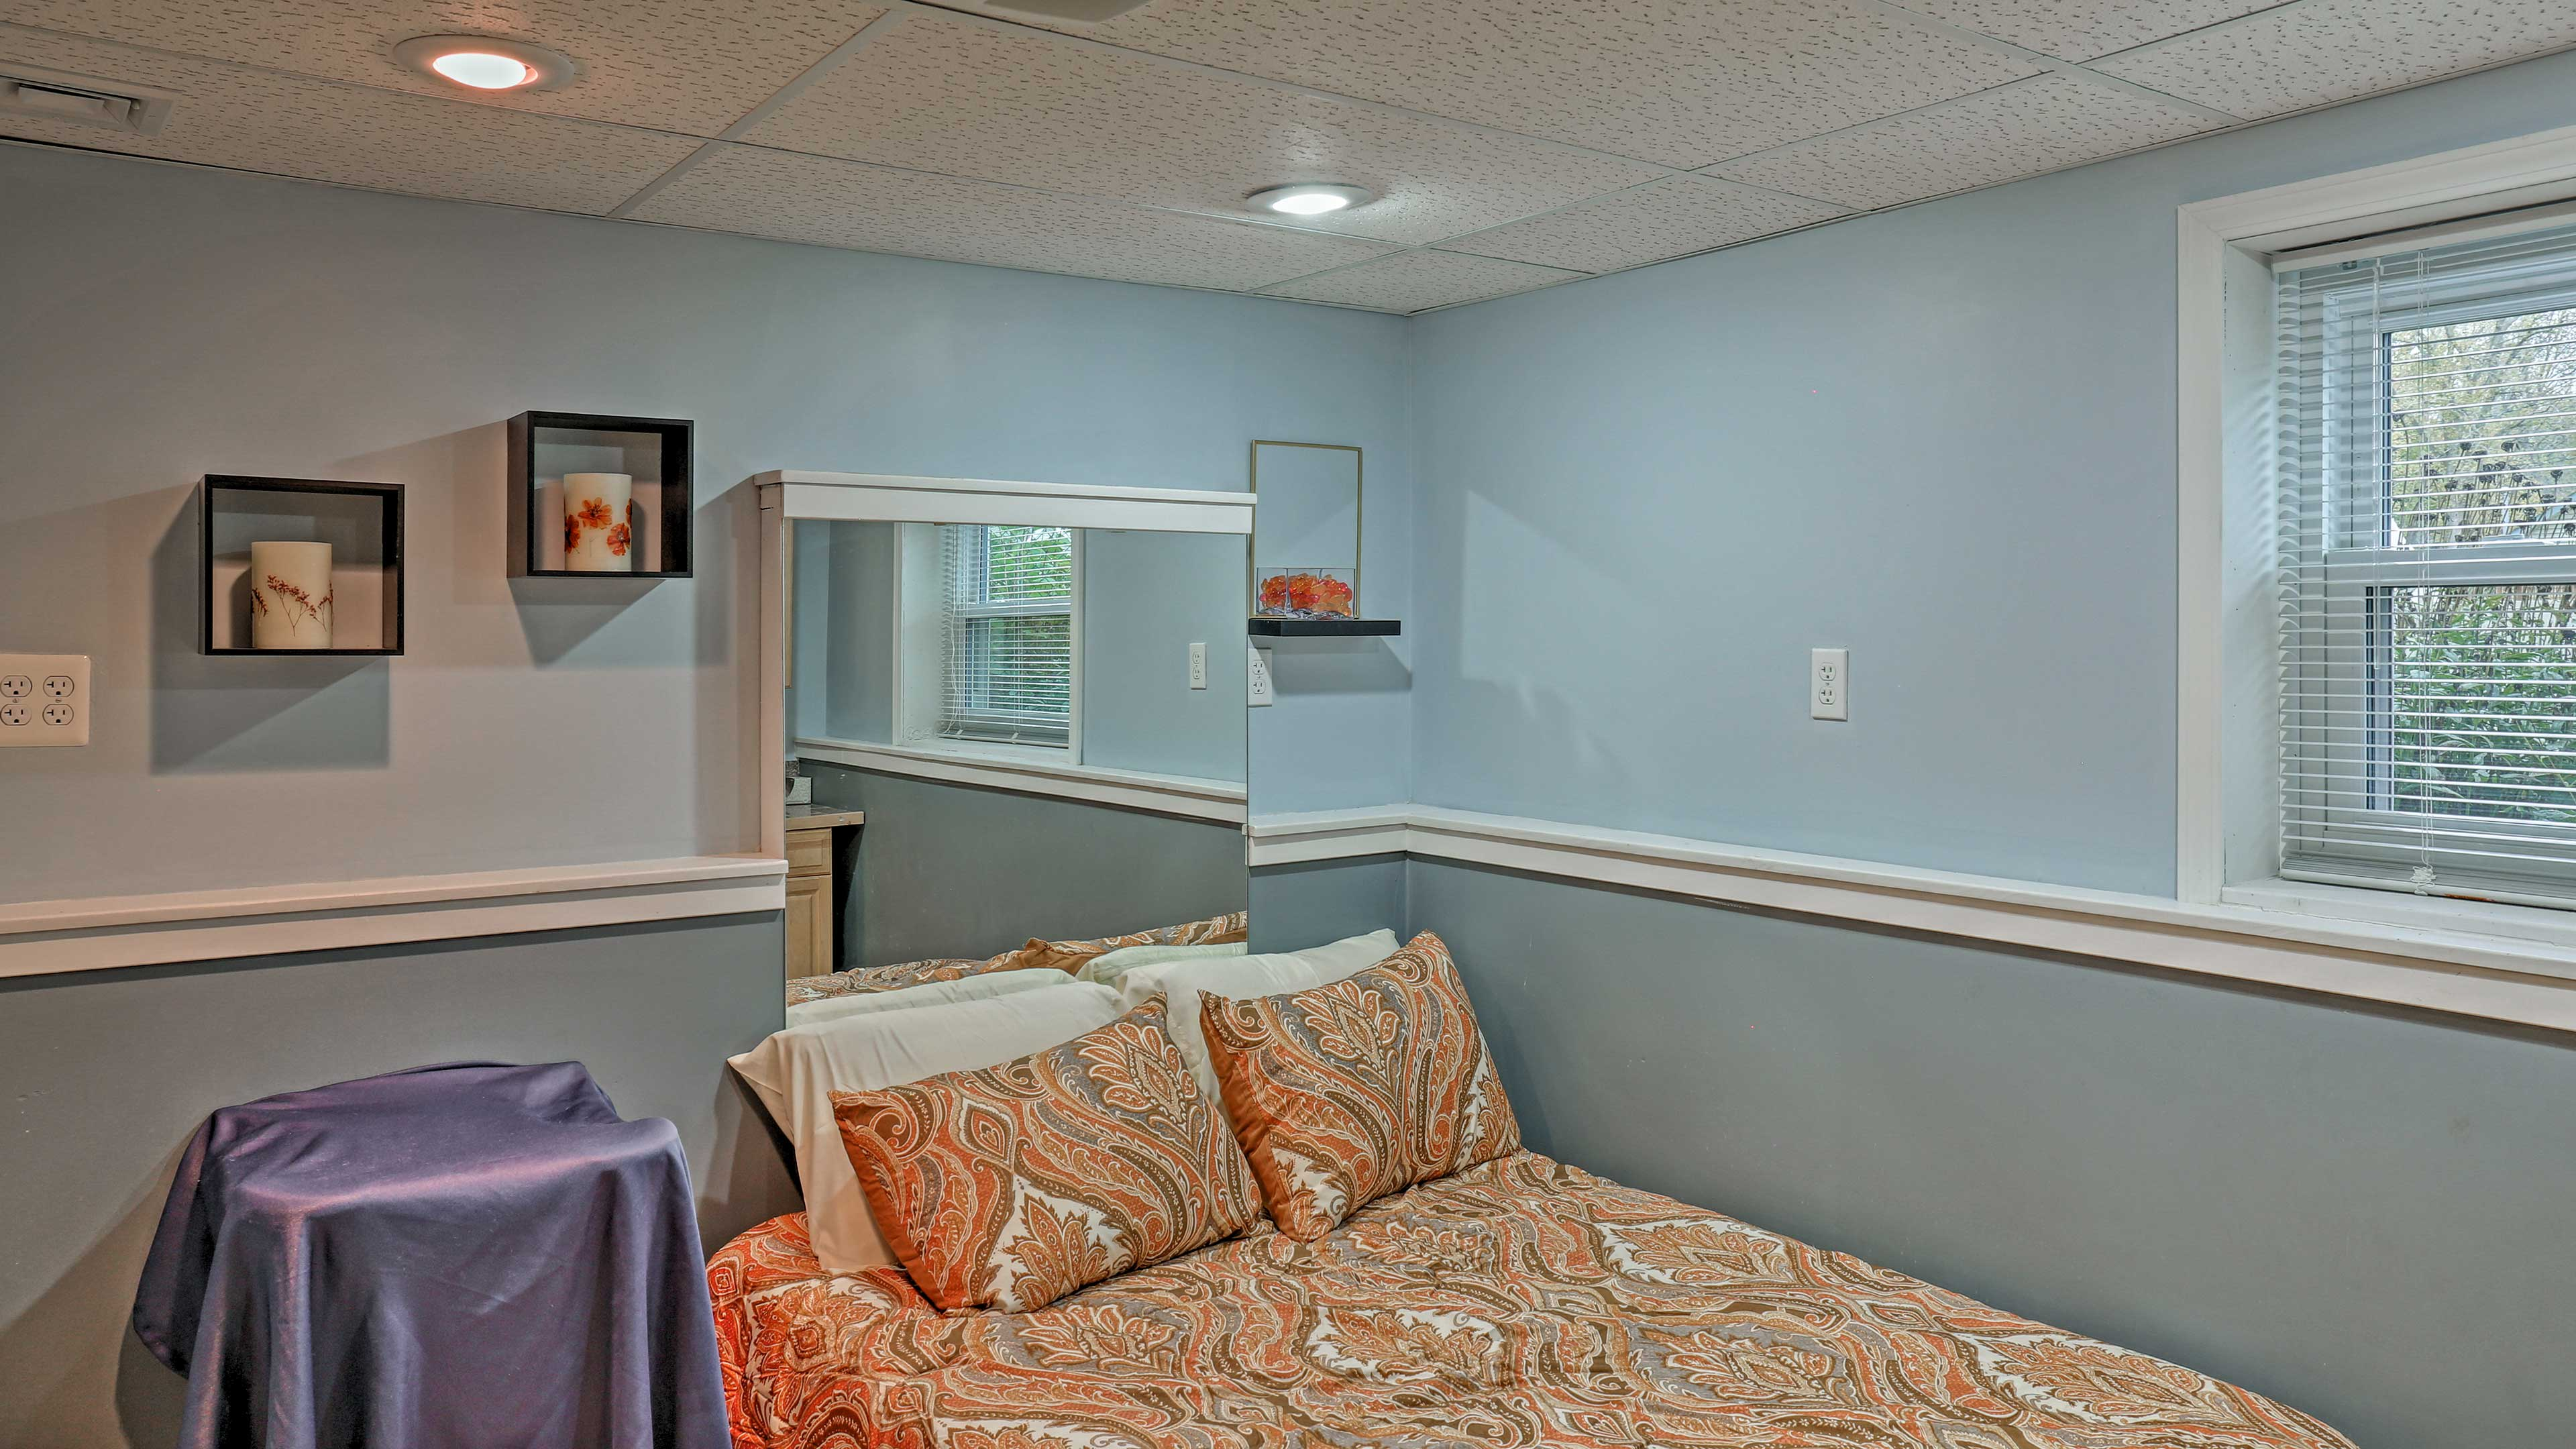 Enjoy a full-sized bed in the fourth and final bedroom of the house.